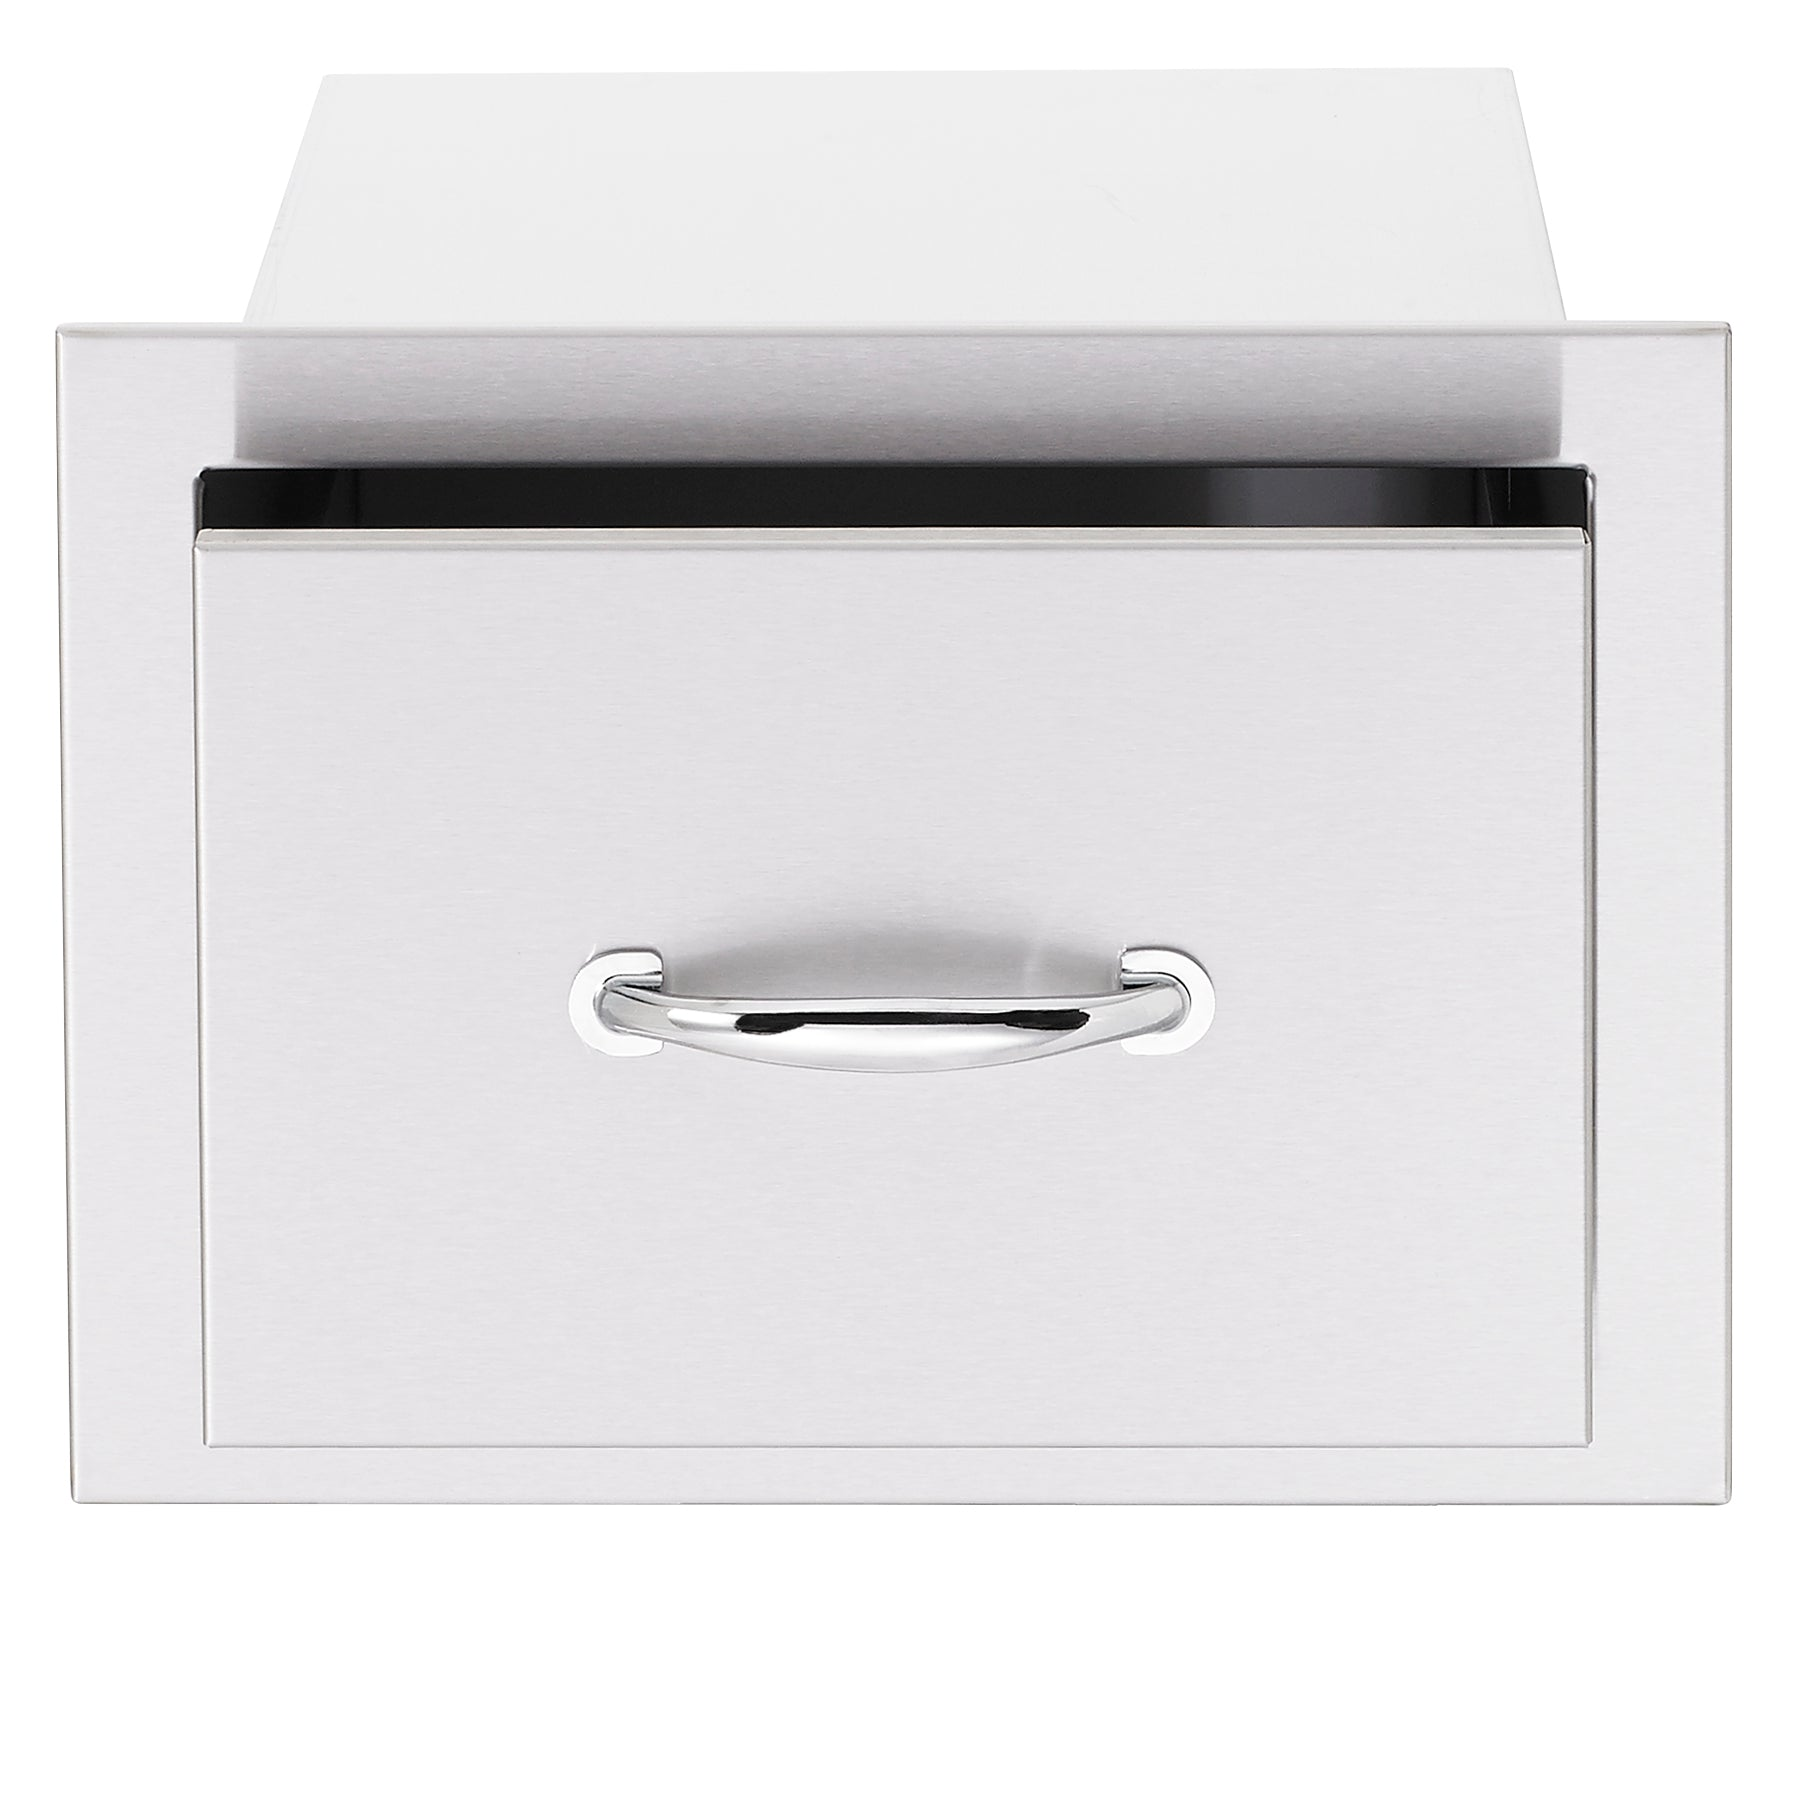 "17"" North American Stainless Steel Single Drawer"